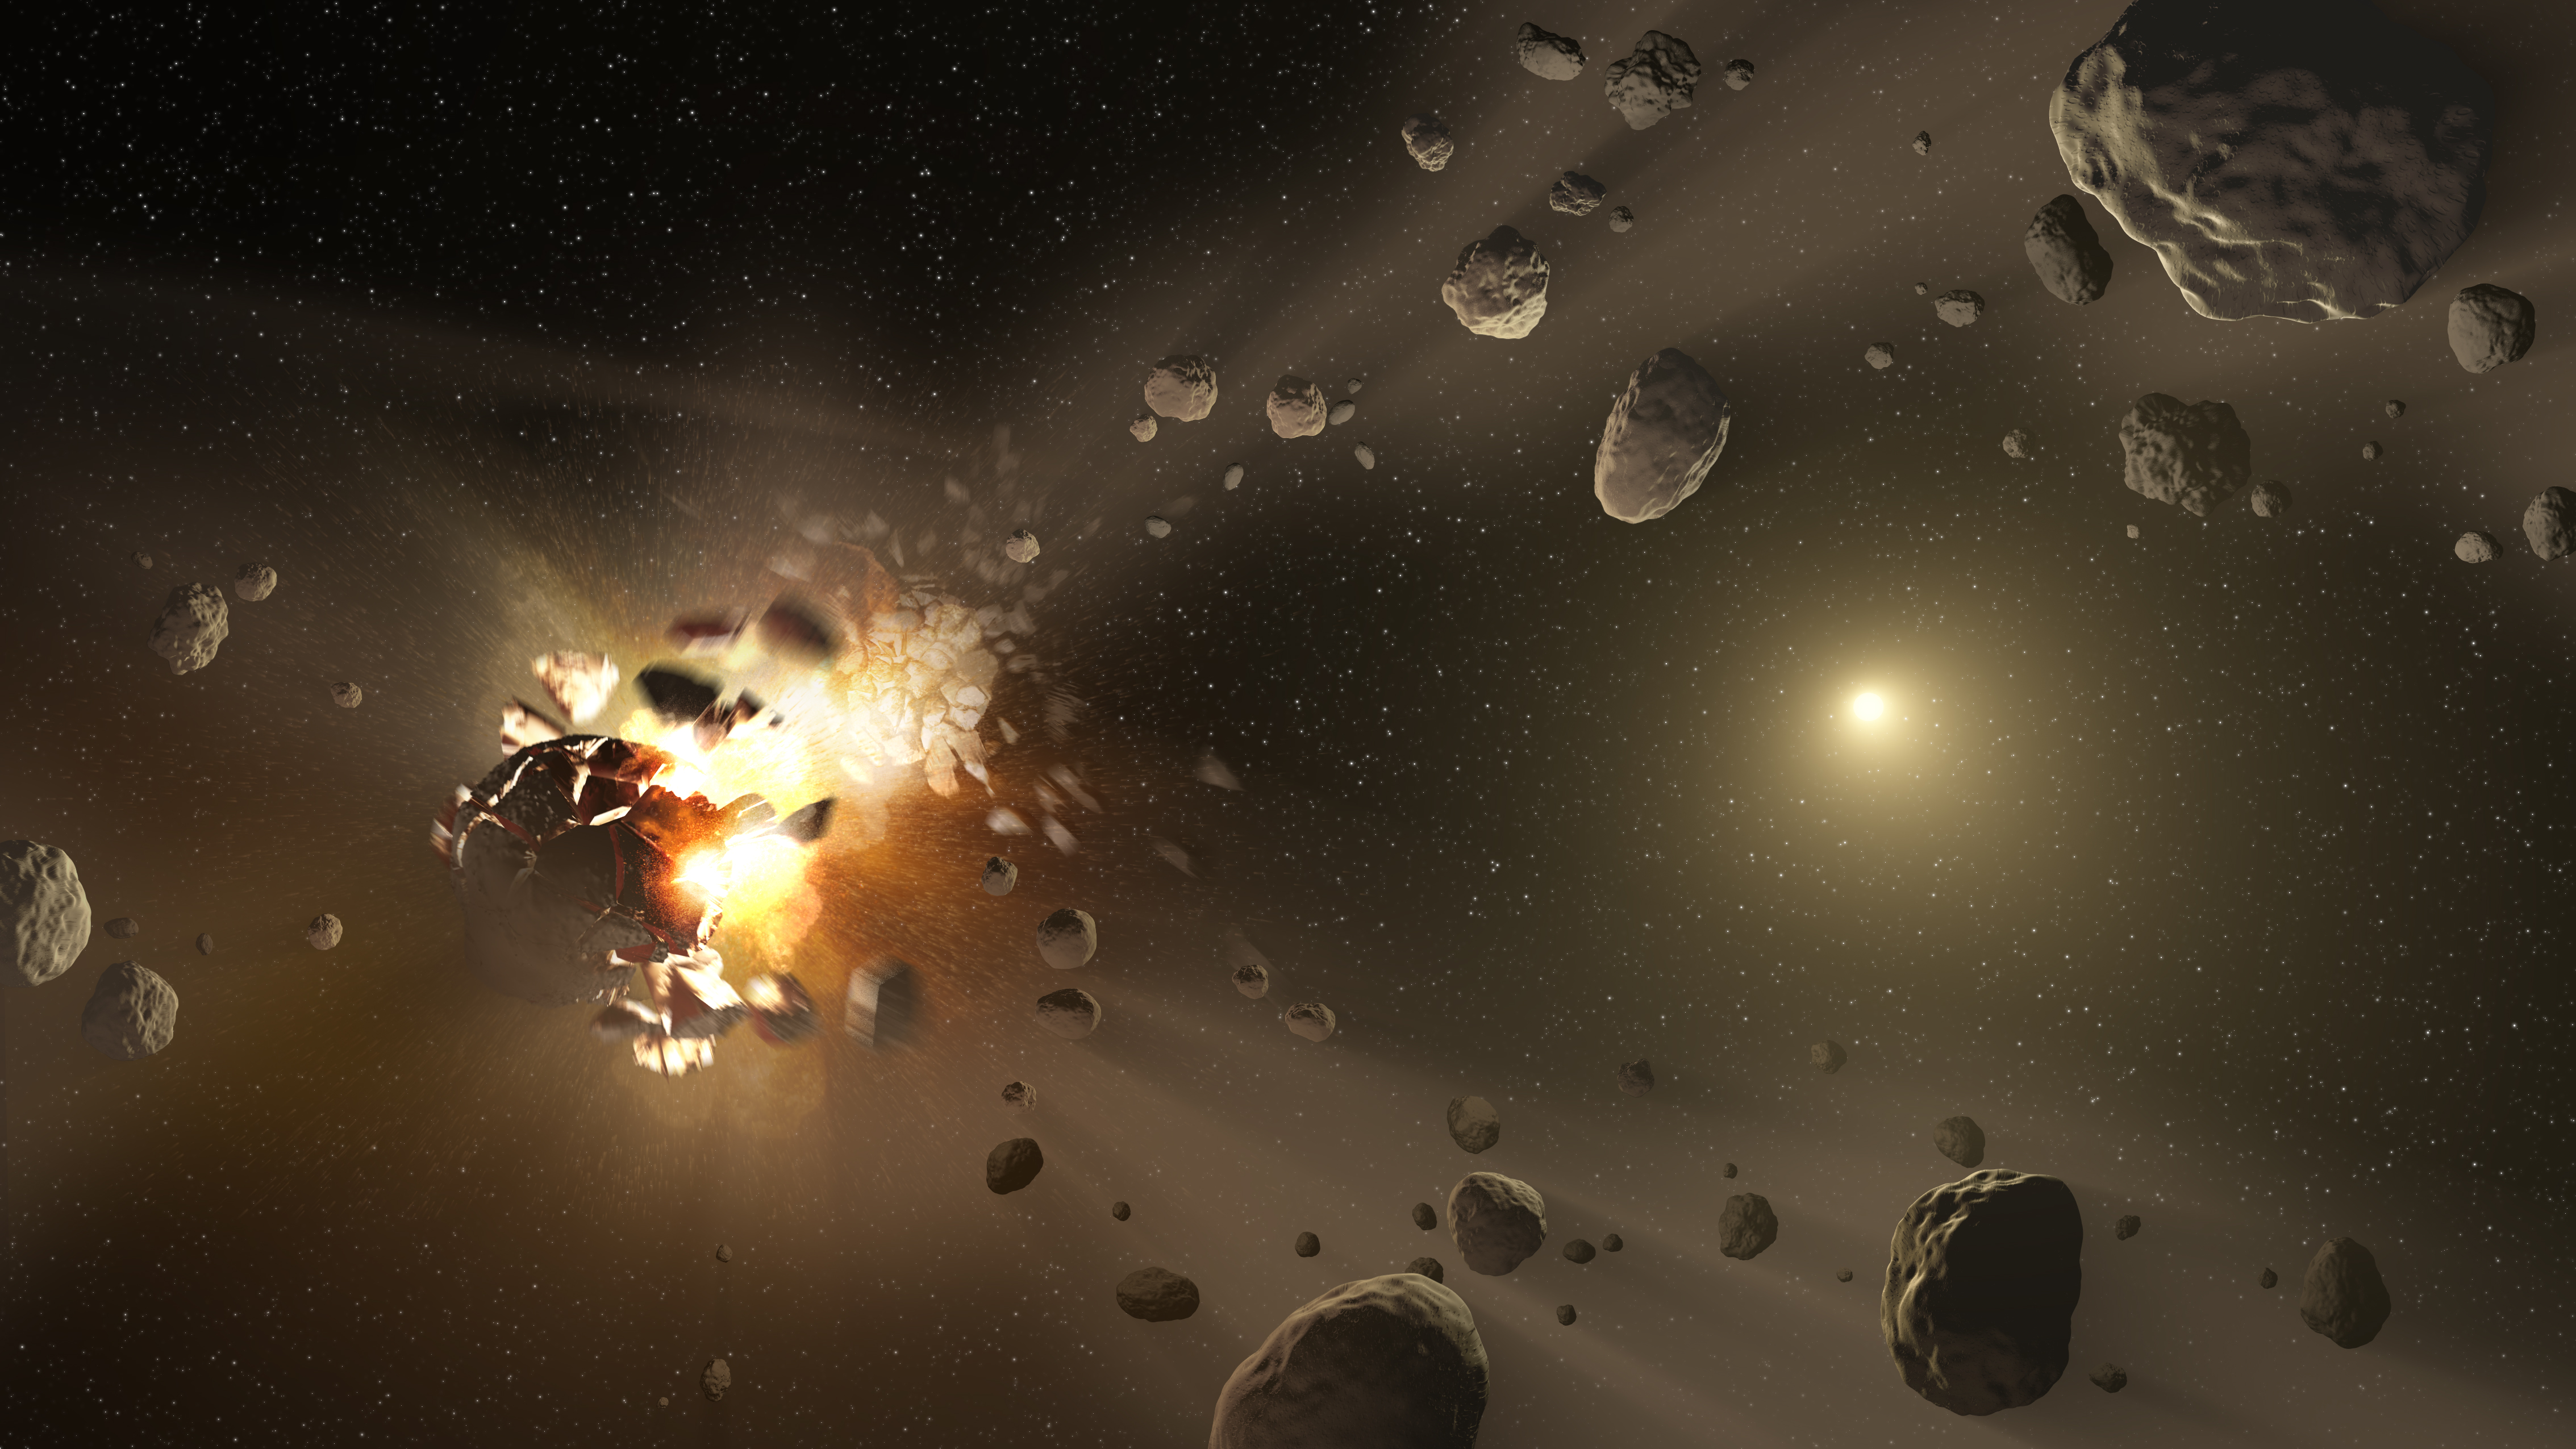 Near Earth asteroids